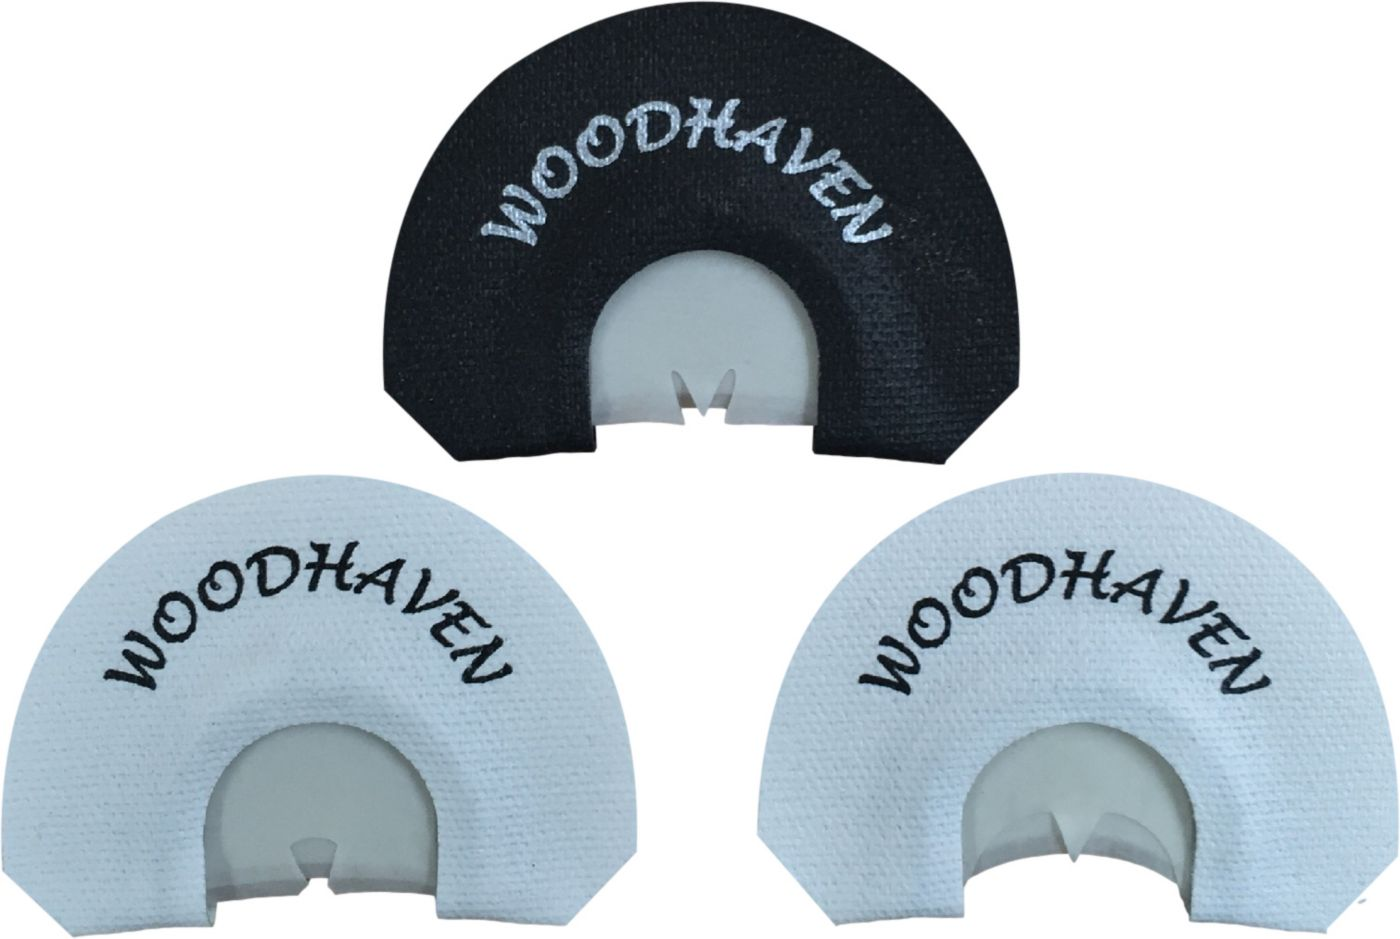 Woodhaven Simple Series Turkey Mouth Calls – 3 Pack